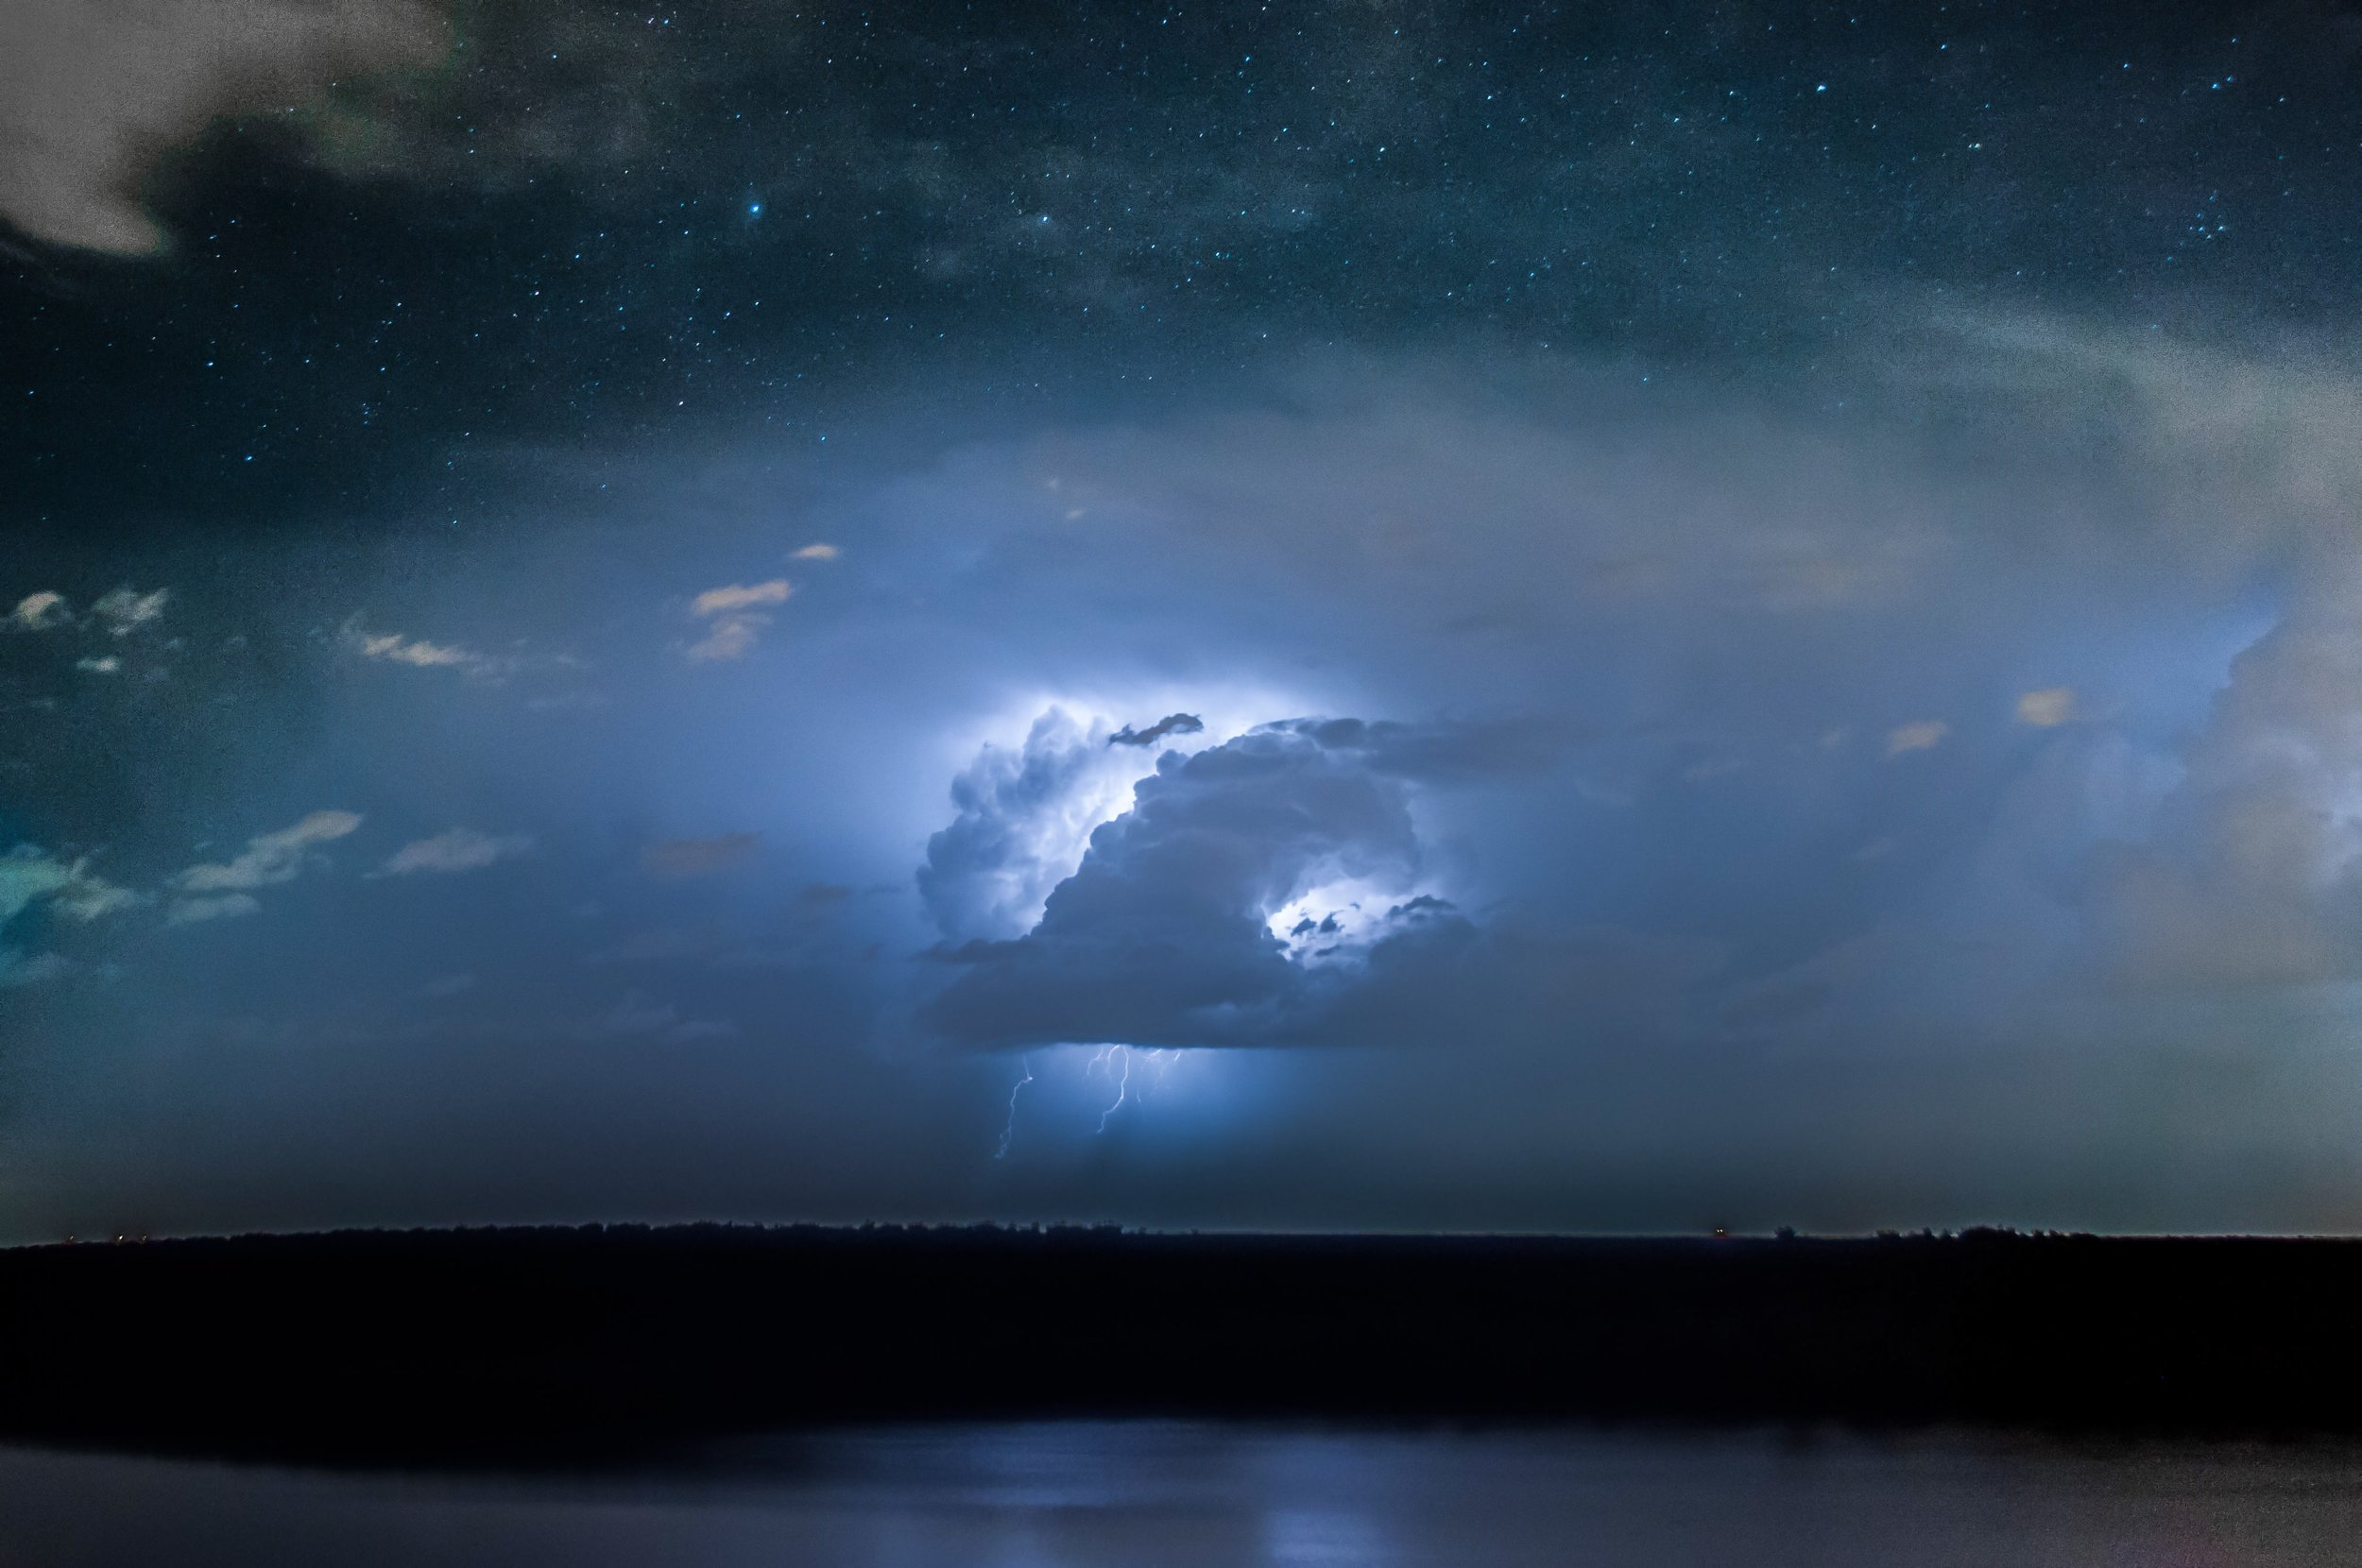 Voice of God - The voice of God thunders. His voice splits the seas. The voice of the Lord is powerful and majestic. His voice strikes like lightning bolts and makes the deserts quake, and he leaves the forests bare. Psalm 29